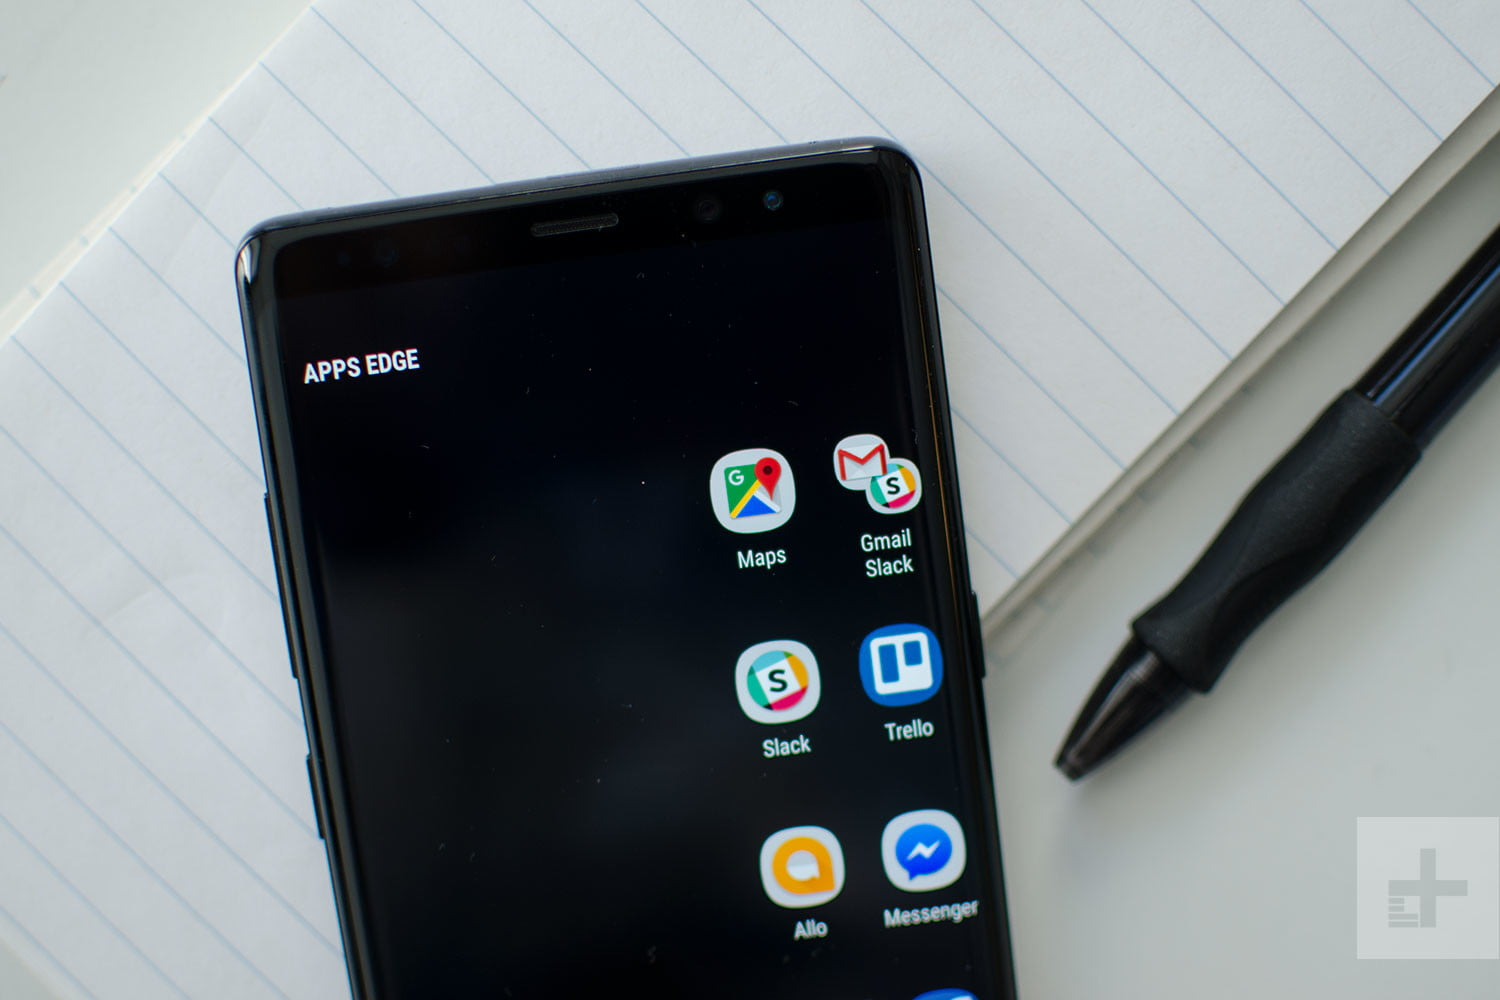 The Best Samsung Galaxy Note 8 Tips and Tricks | Digital Trends